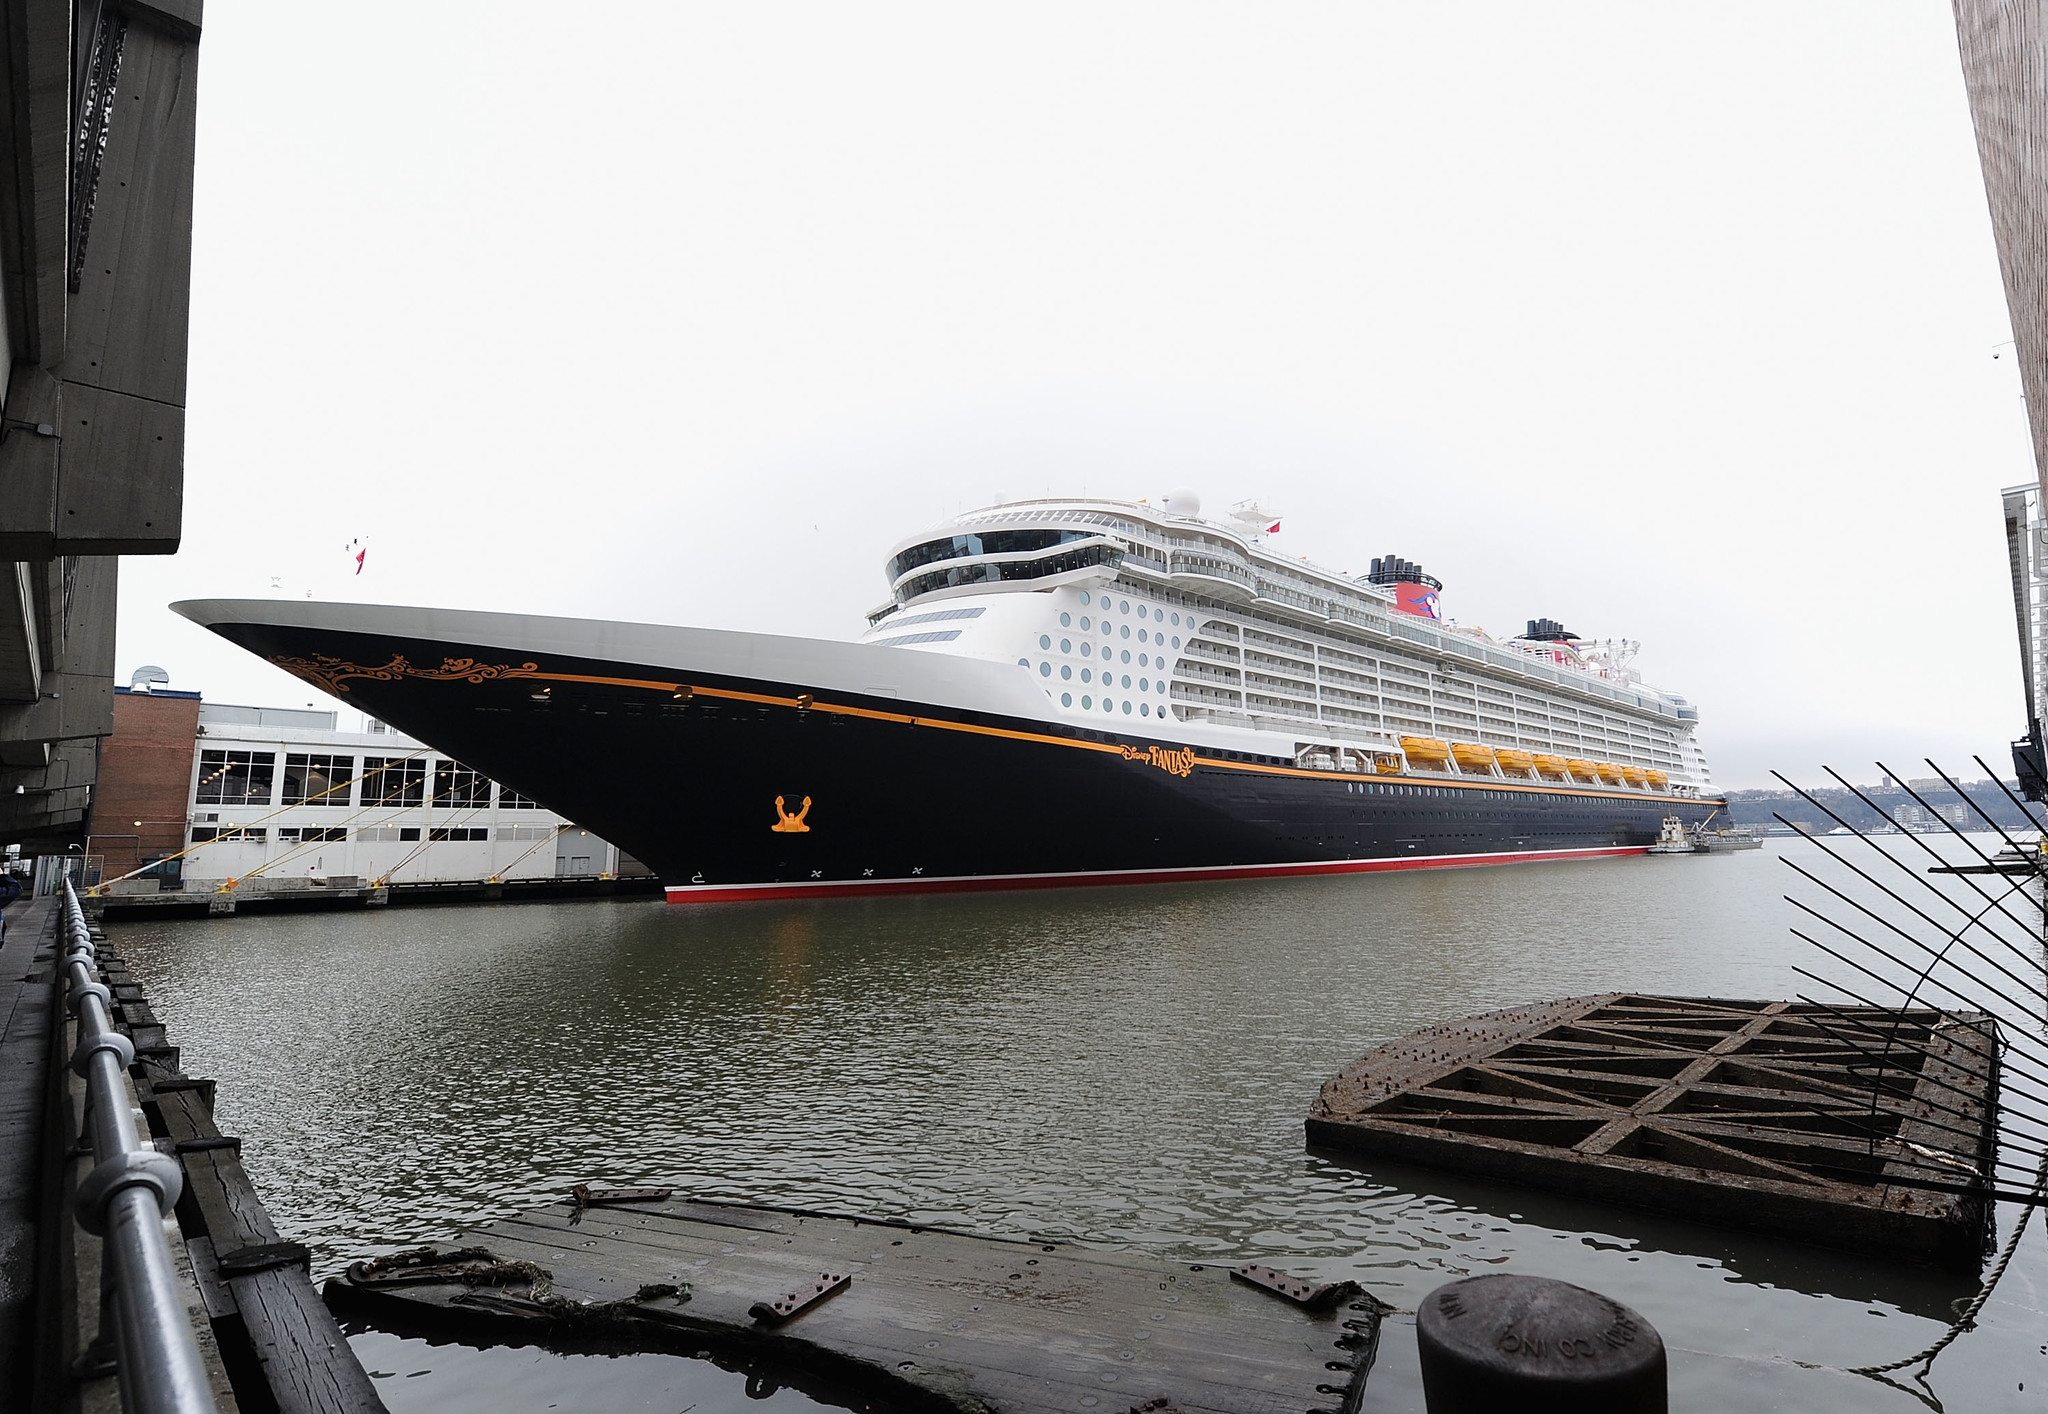 Florida Cruise Guide: Disney Fantasy pictures - Disney Fantasy in New York City